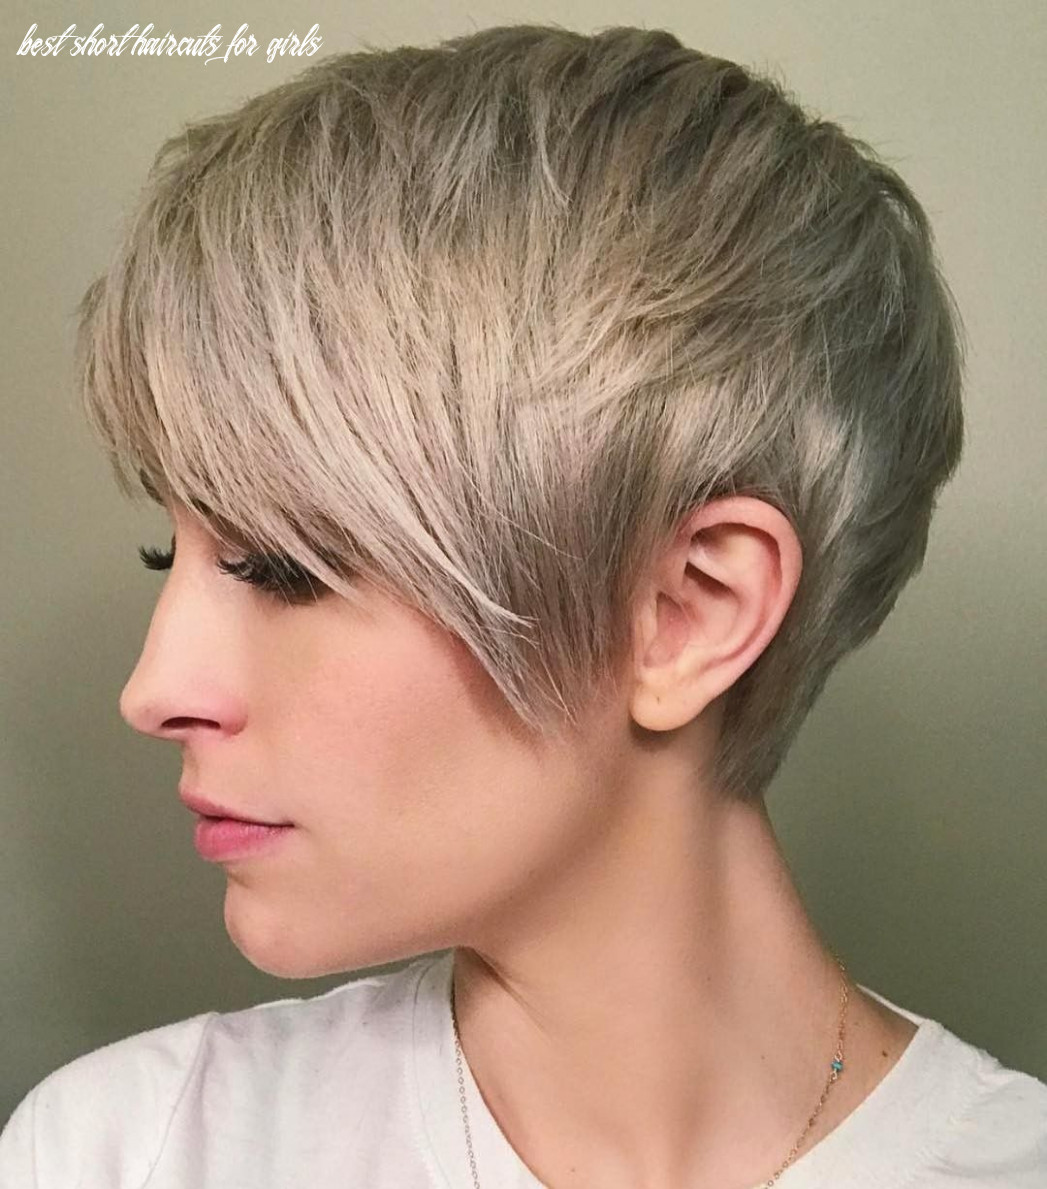 Pin on hairstyles best short haircuts for girls